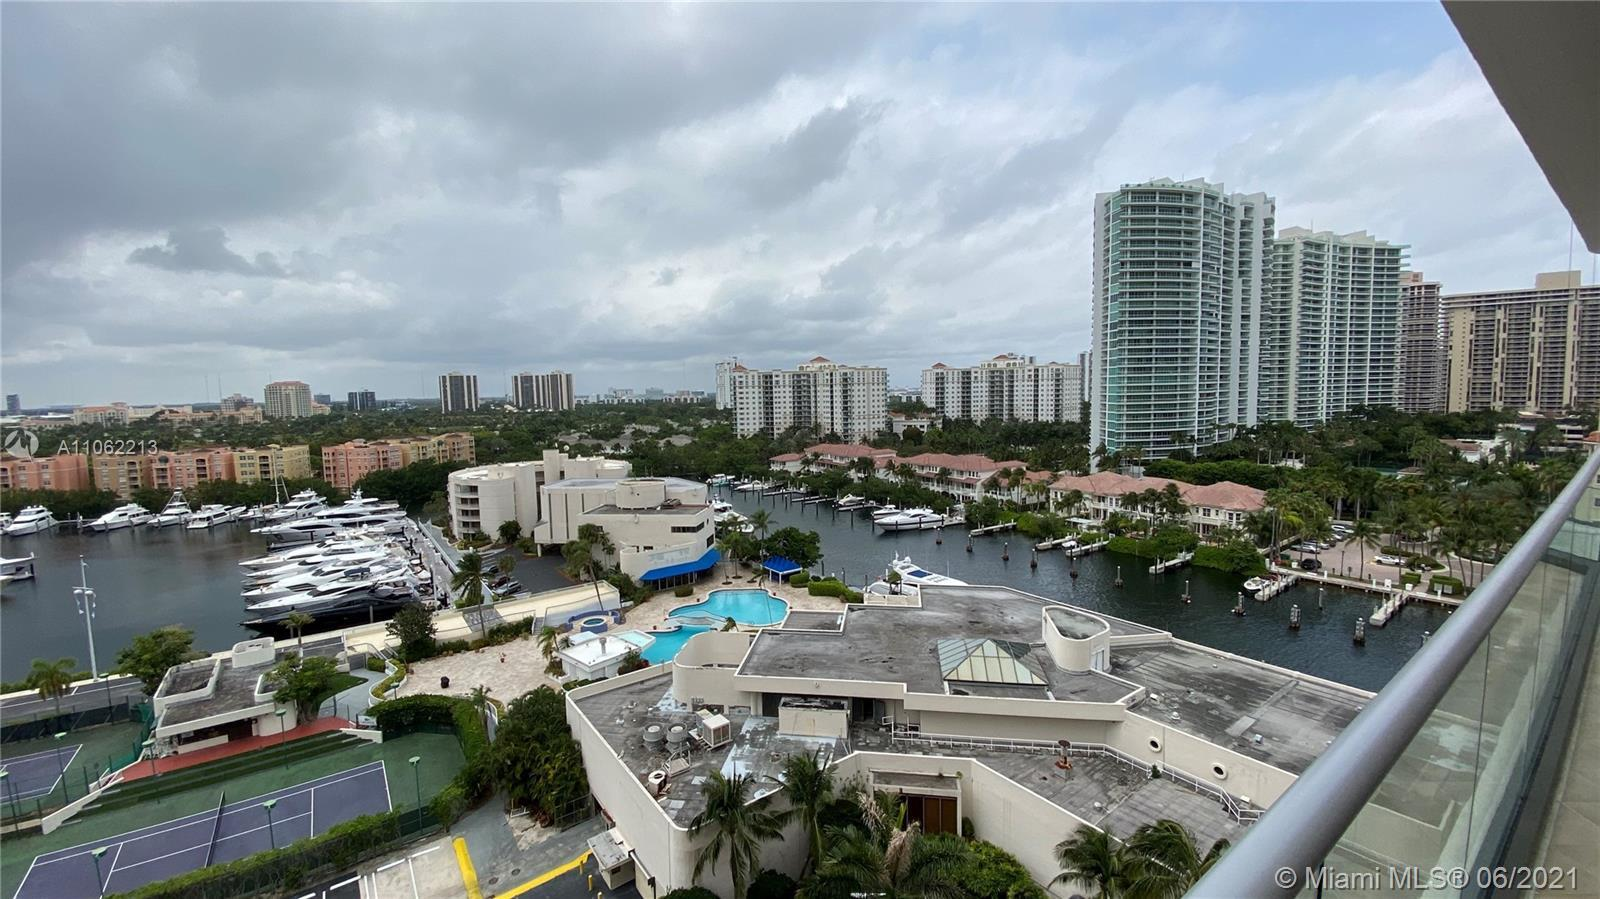 Turnberry Isle - Condos for sale